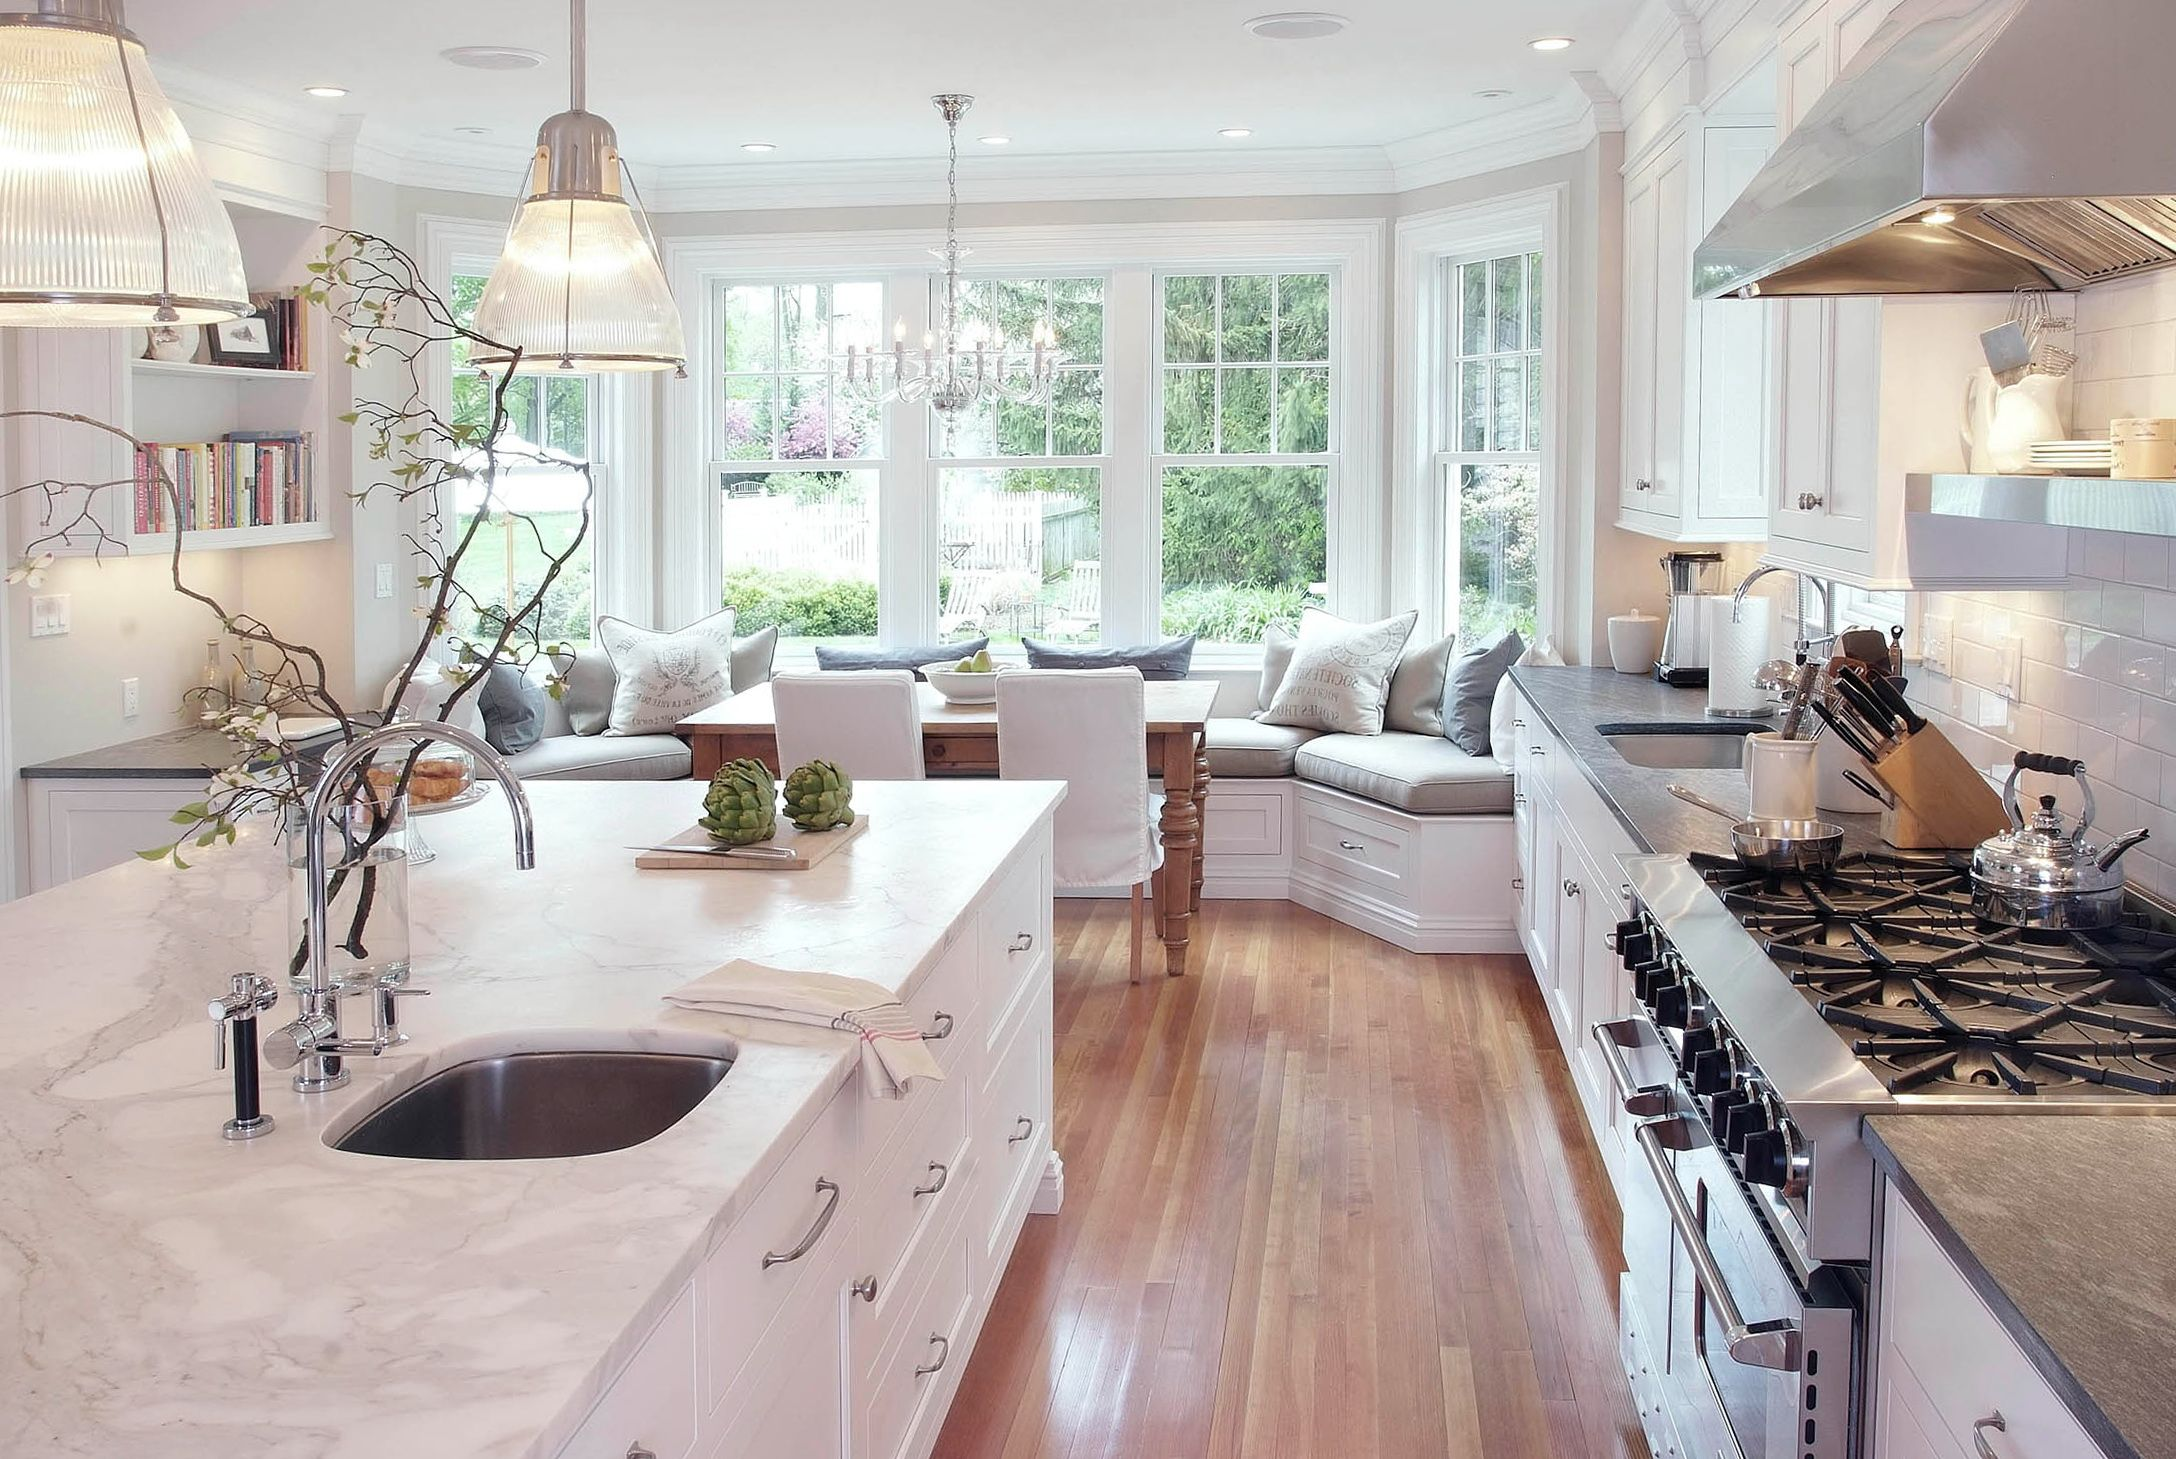 window-bench-seat-kitchen.jpg (2176×1459) | Ideas for the House ...